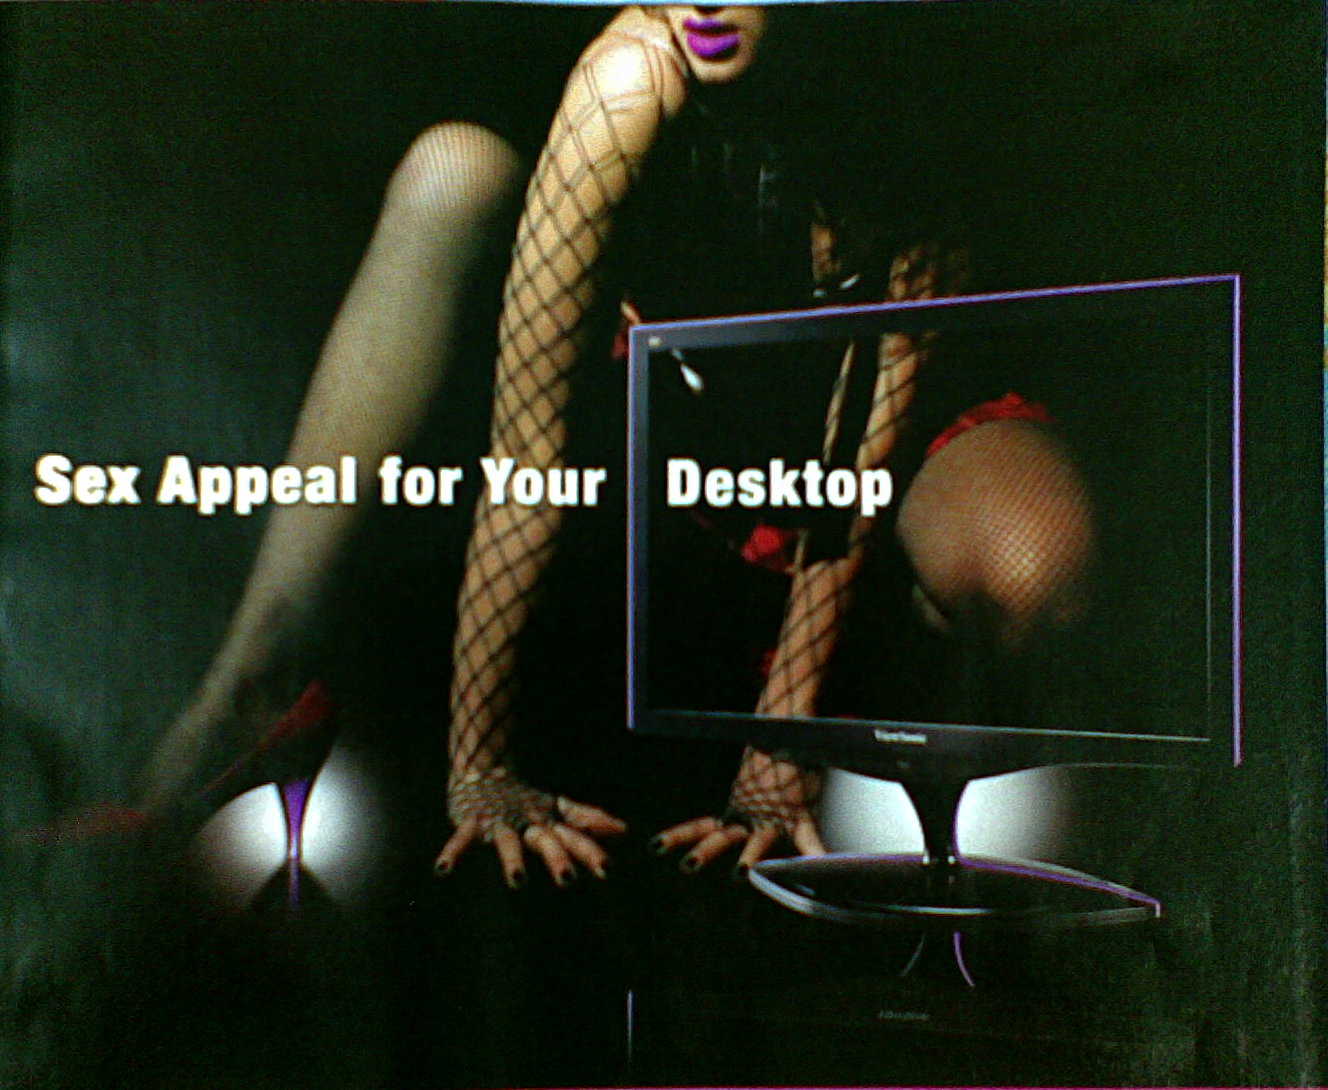 Viewsonic LCD monitor \'Sex Appeal for Desktop\' Ad